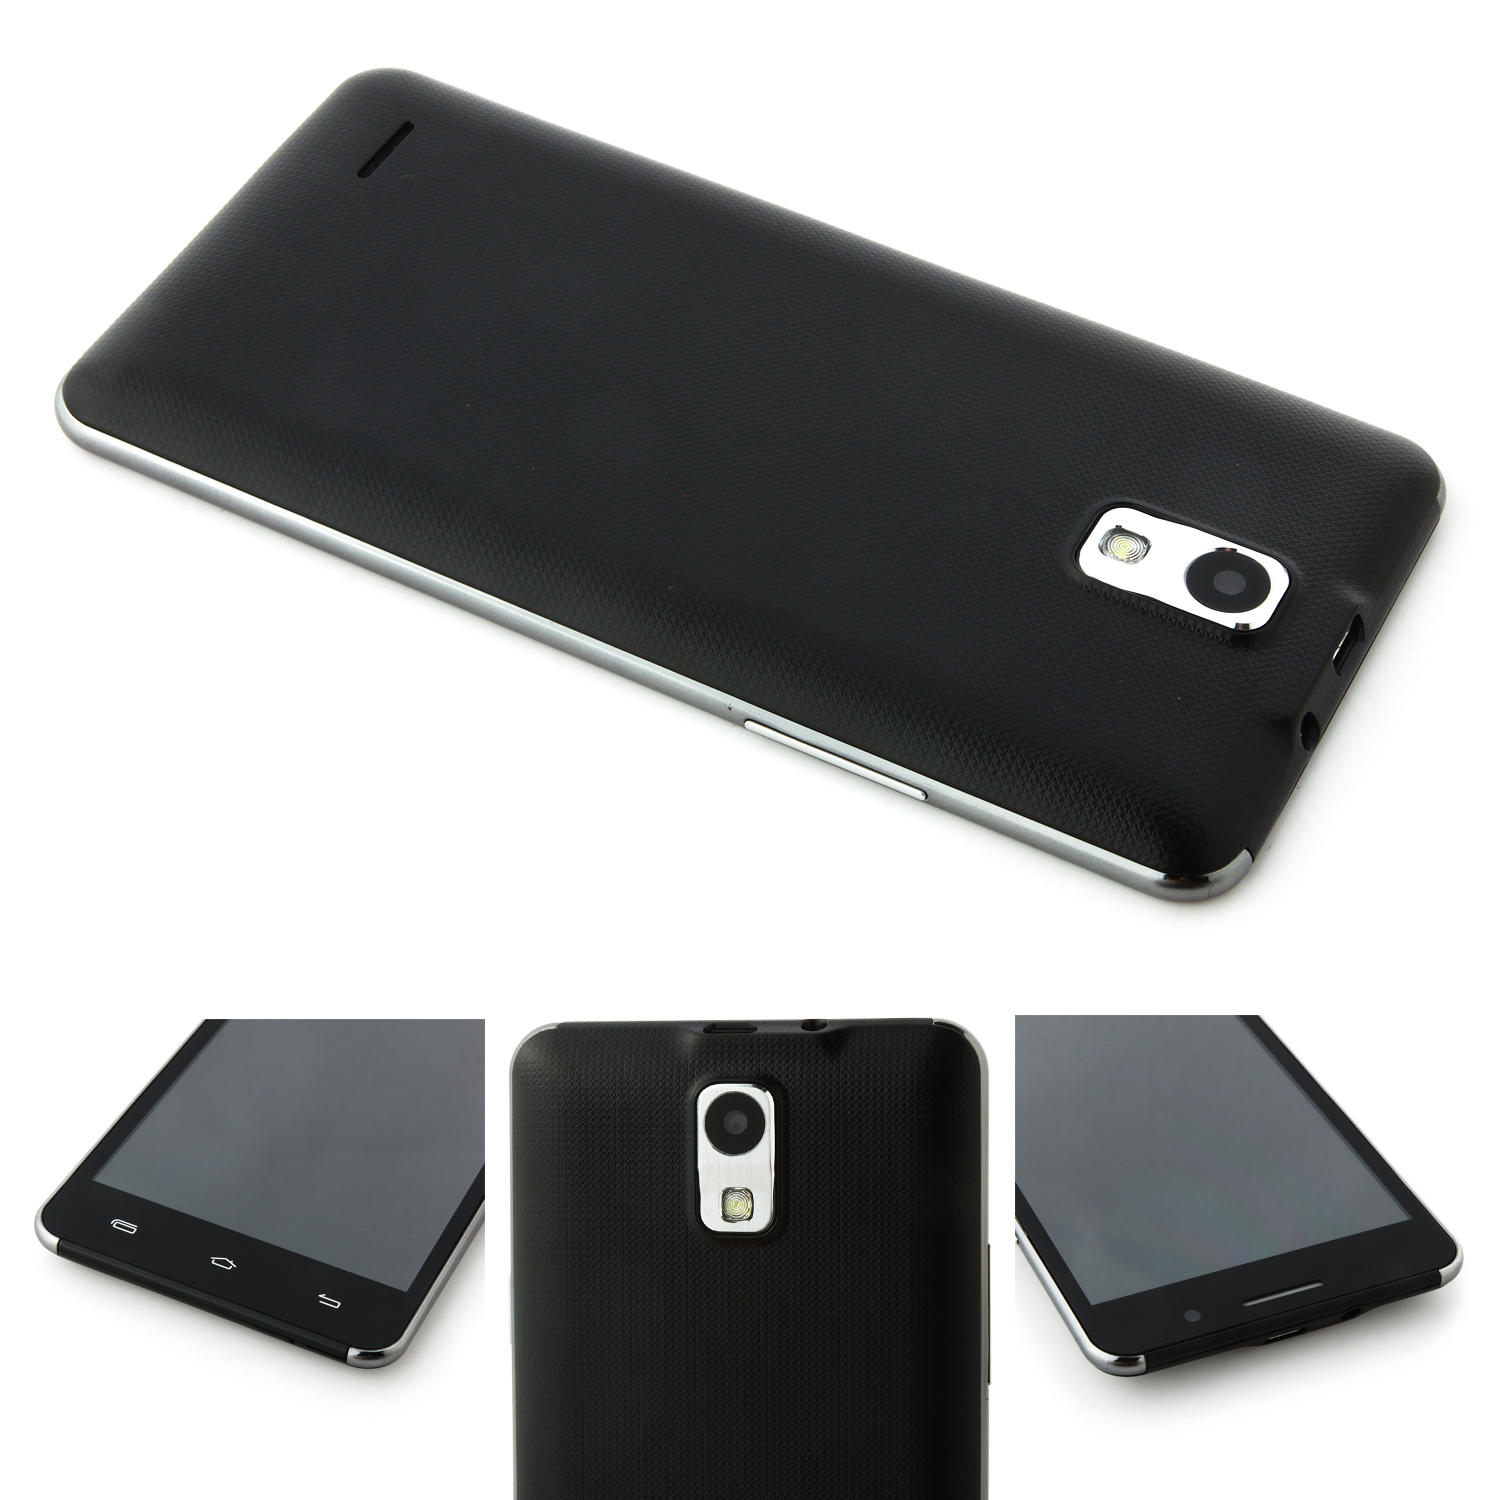 P7 Smartphone 5.0 inch QHD Screen MTK6572W Android 4.4 Smart Wake Black